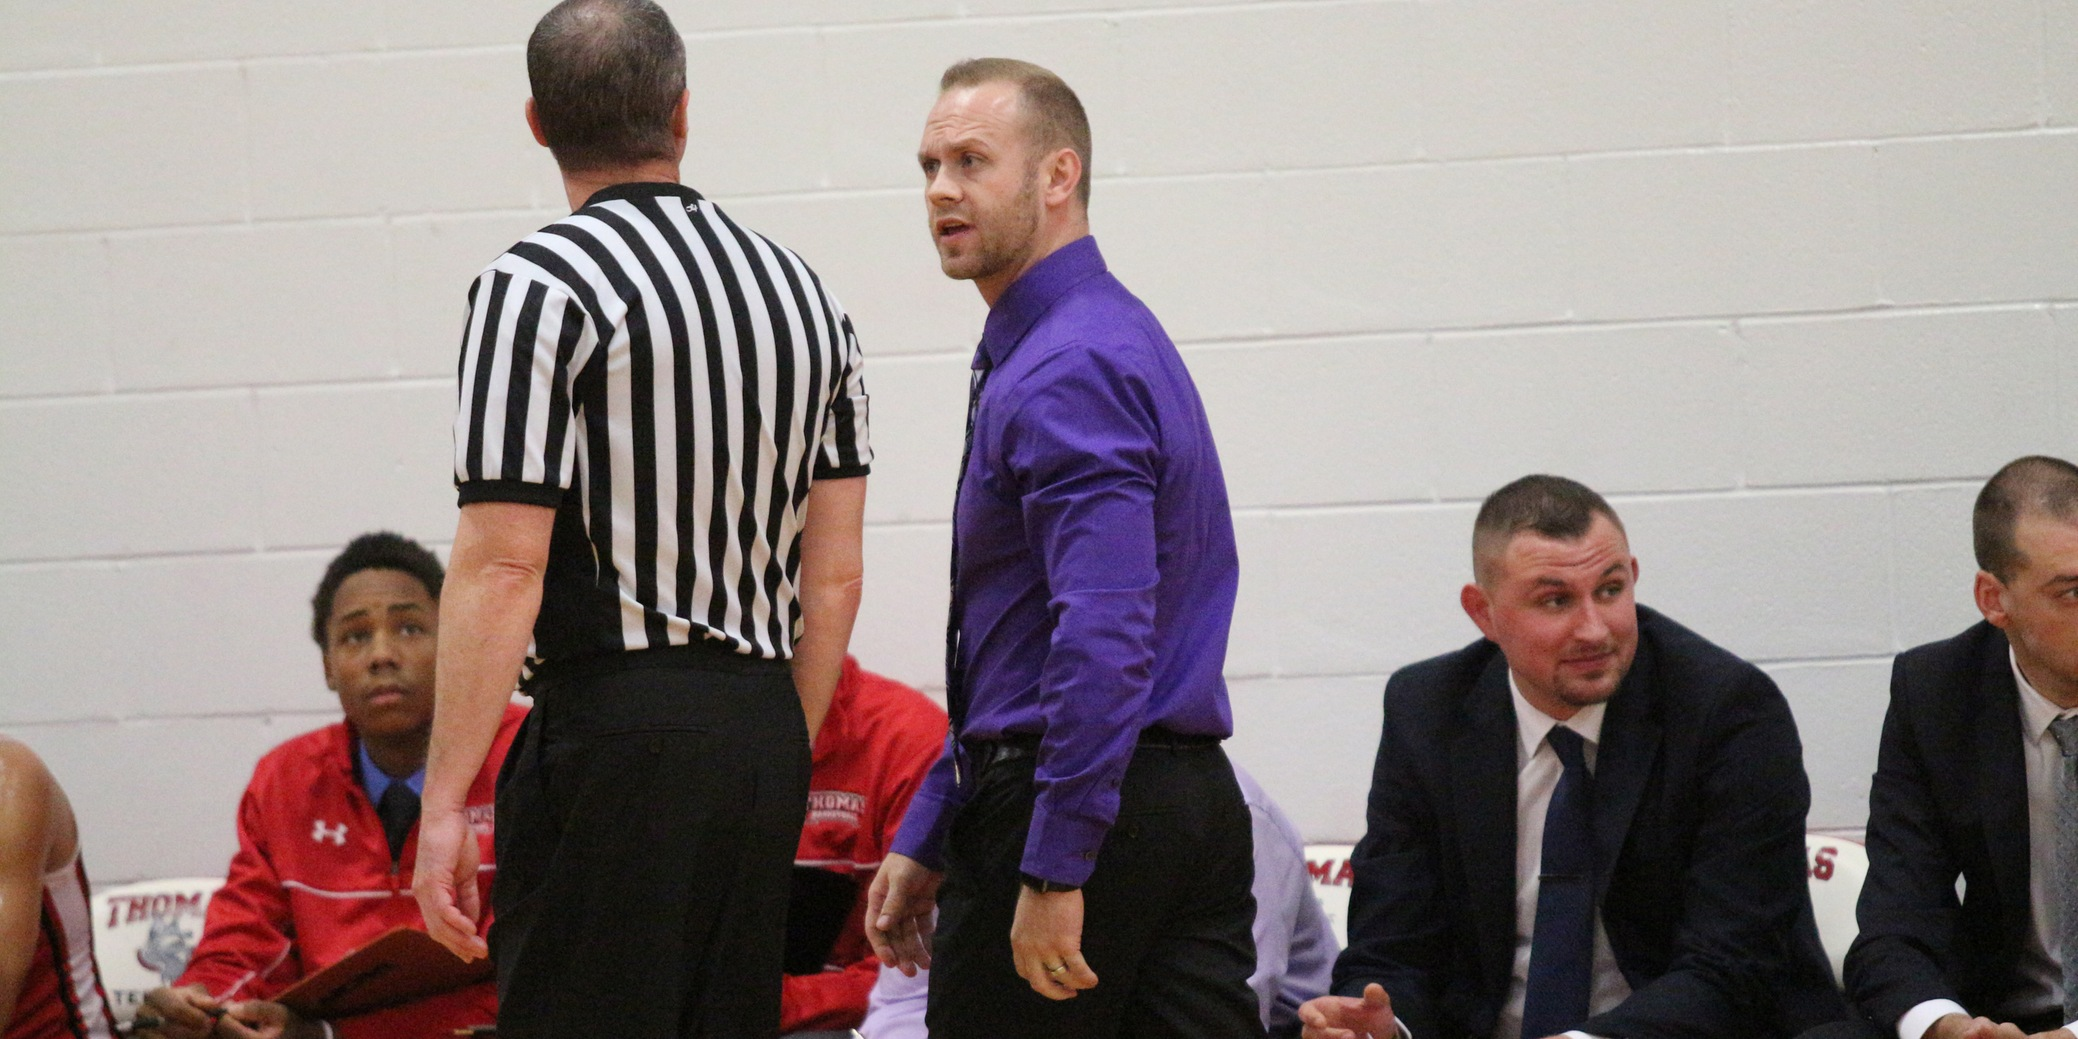 Geoff Hensley Resigns as Thomas Men's Basketball Coach